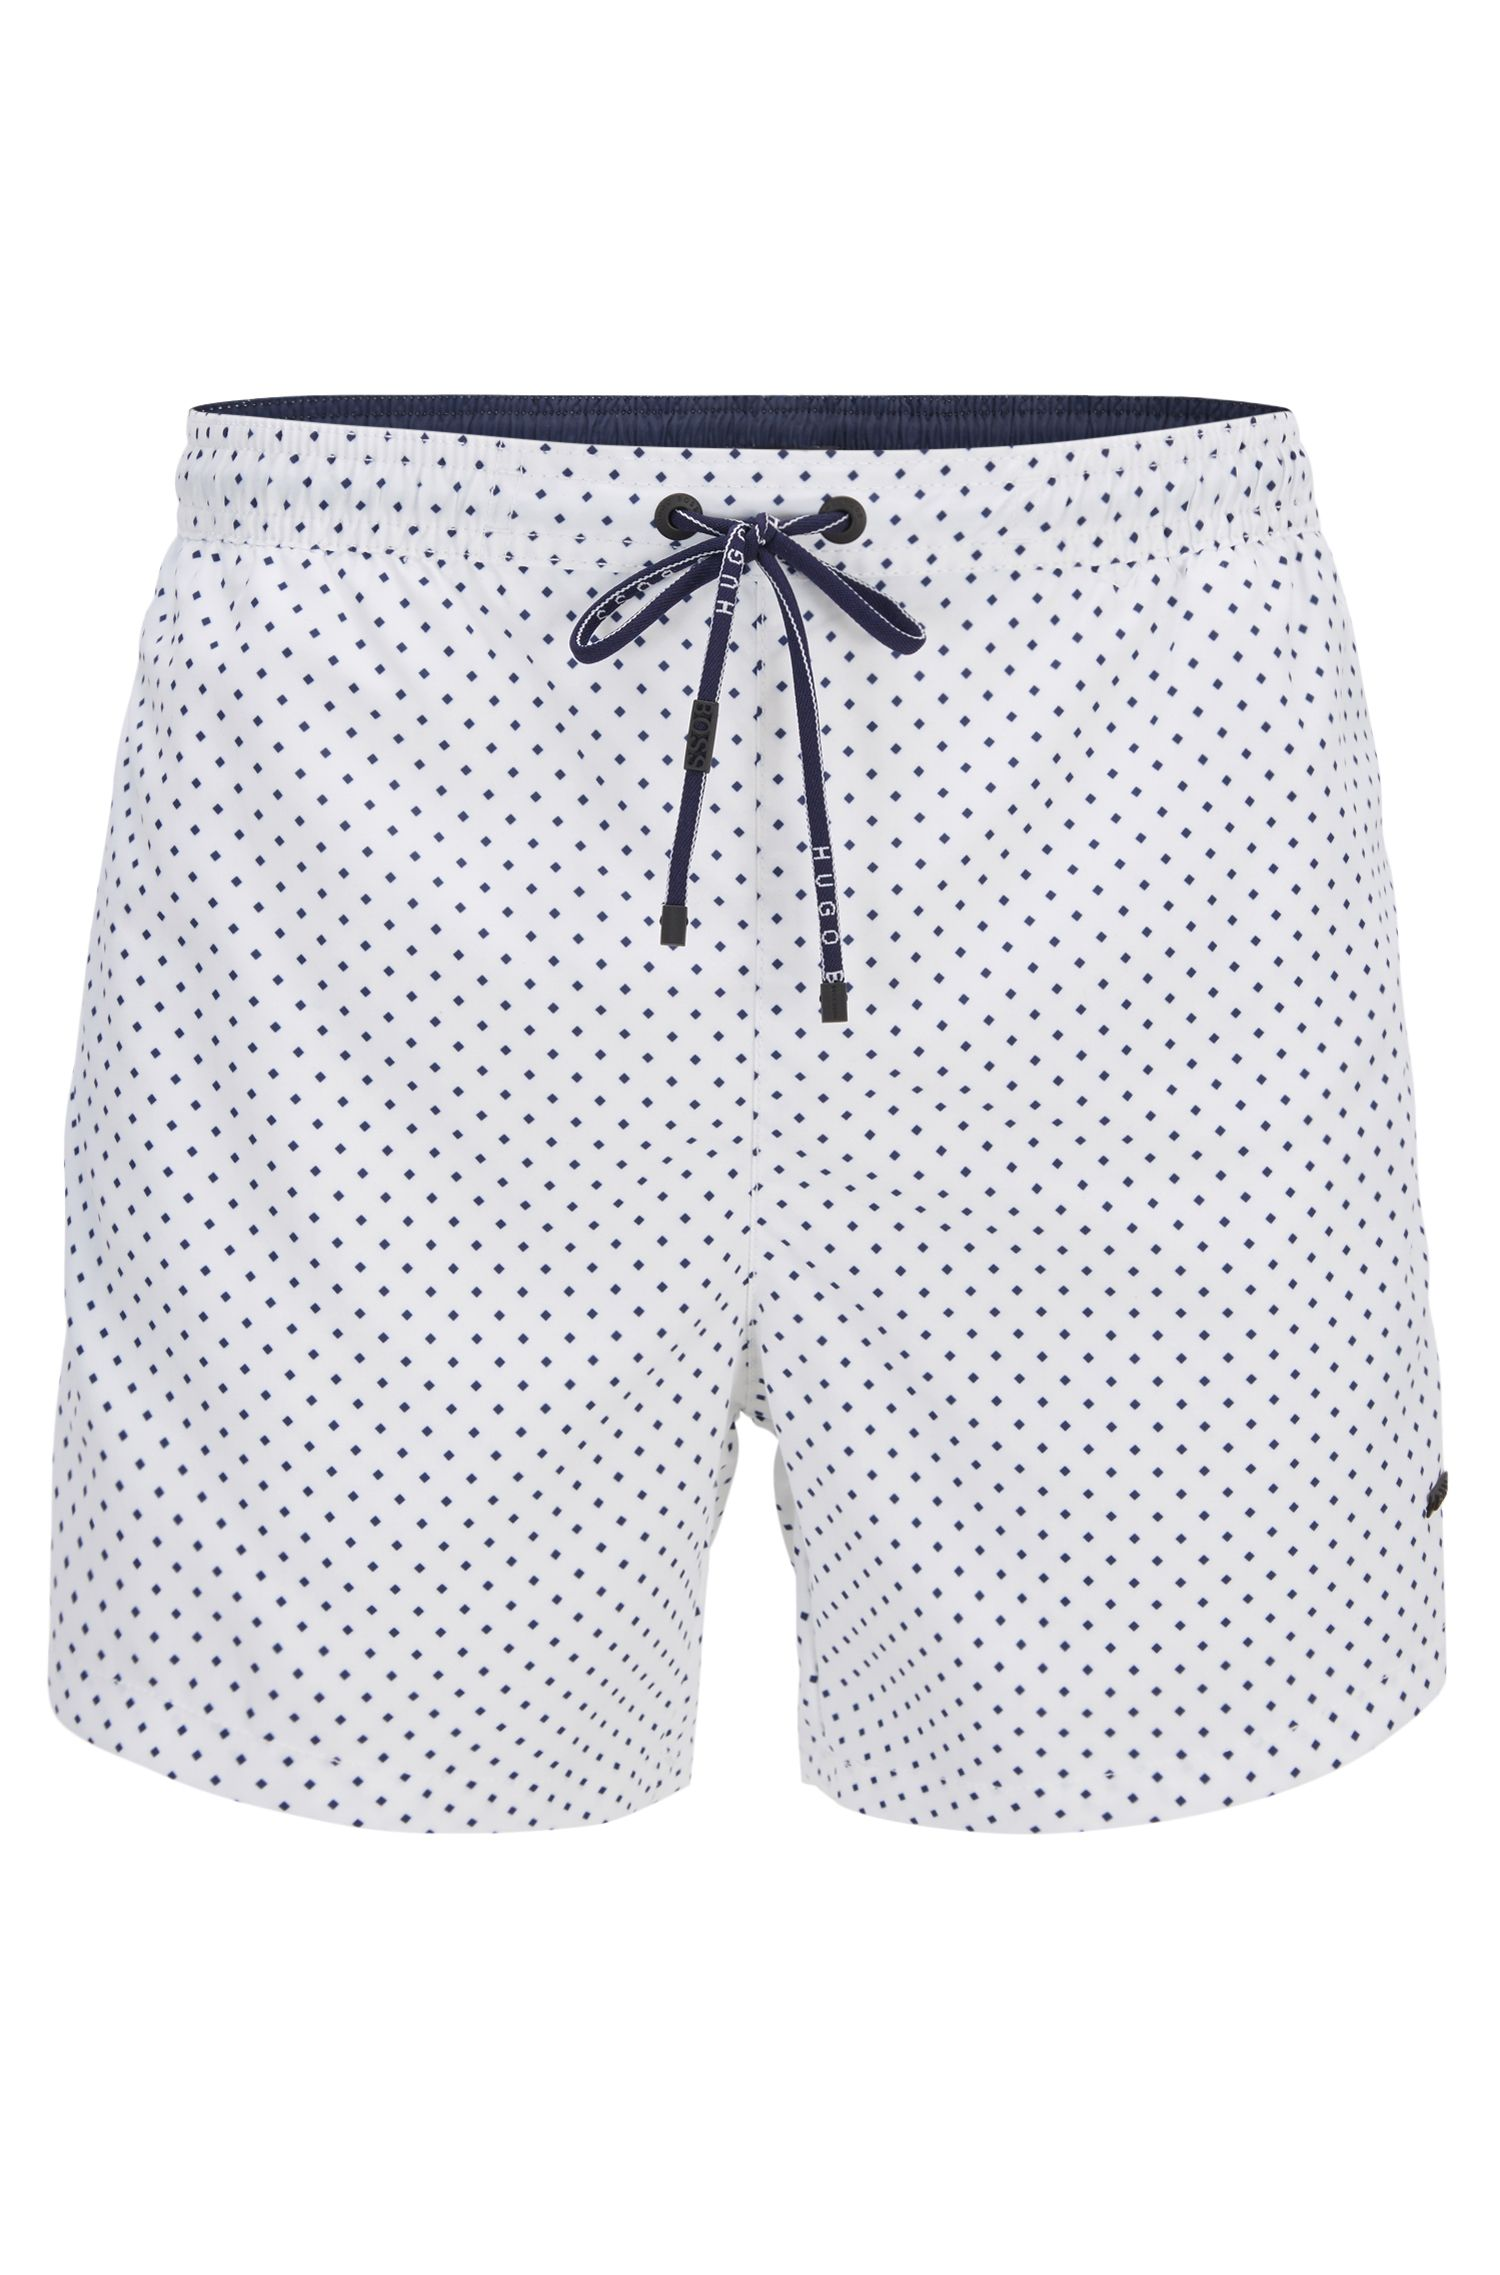 Micro-pattern swim shorts in quick-drying technical fabric